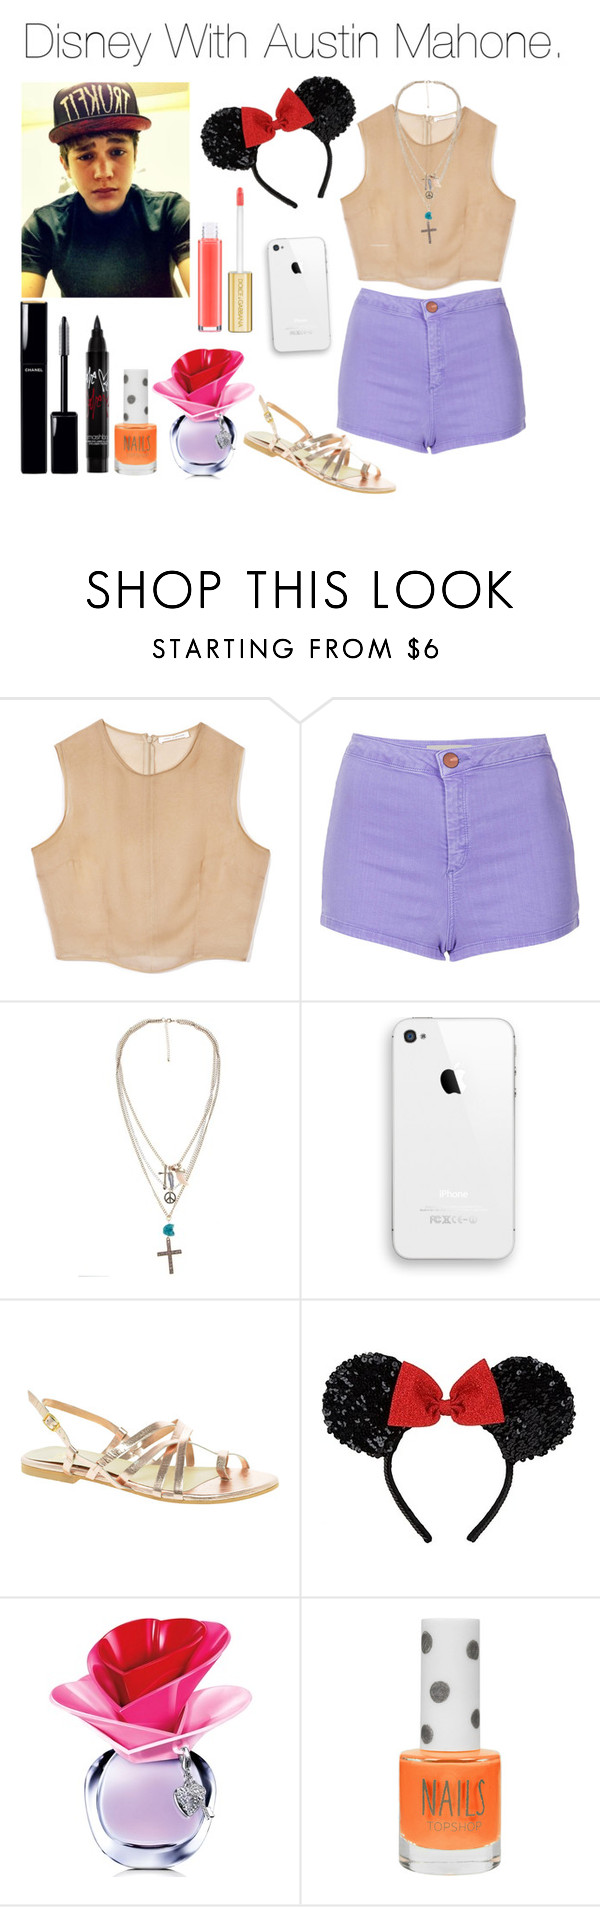 """""""Disney With Austin Mahone"""" by andymallette ❤ liked on Polyvore featuring Topshop, Faith, Disney, Justin Bieber, Chanel and Dolce&Gabbana"""